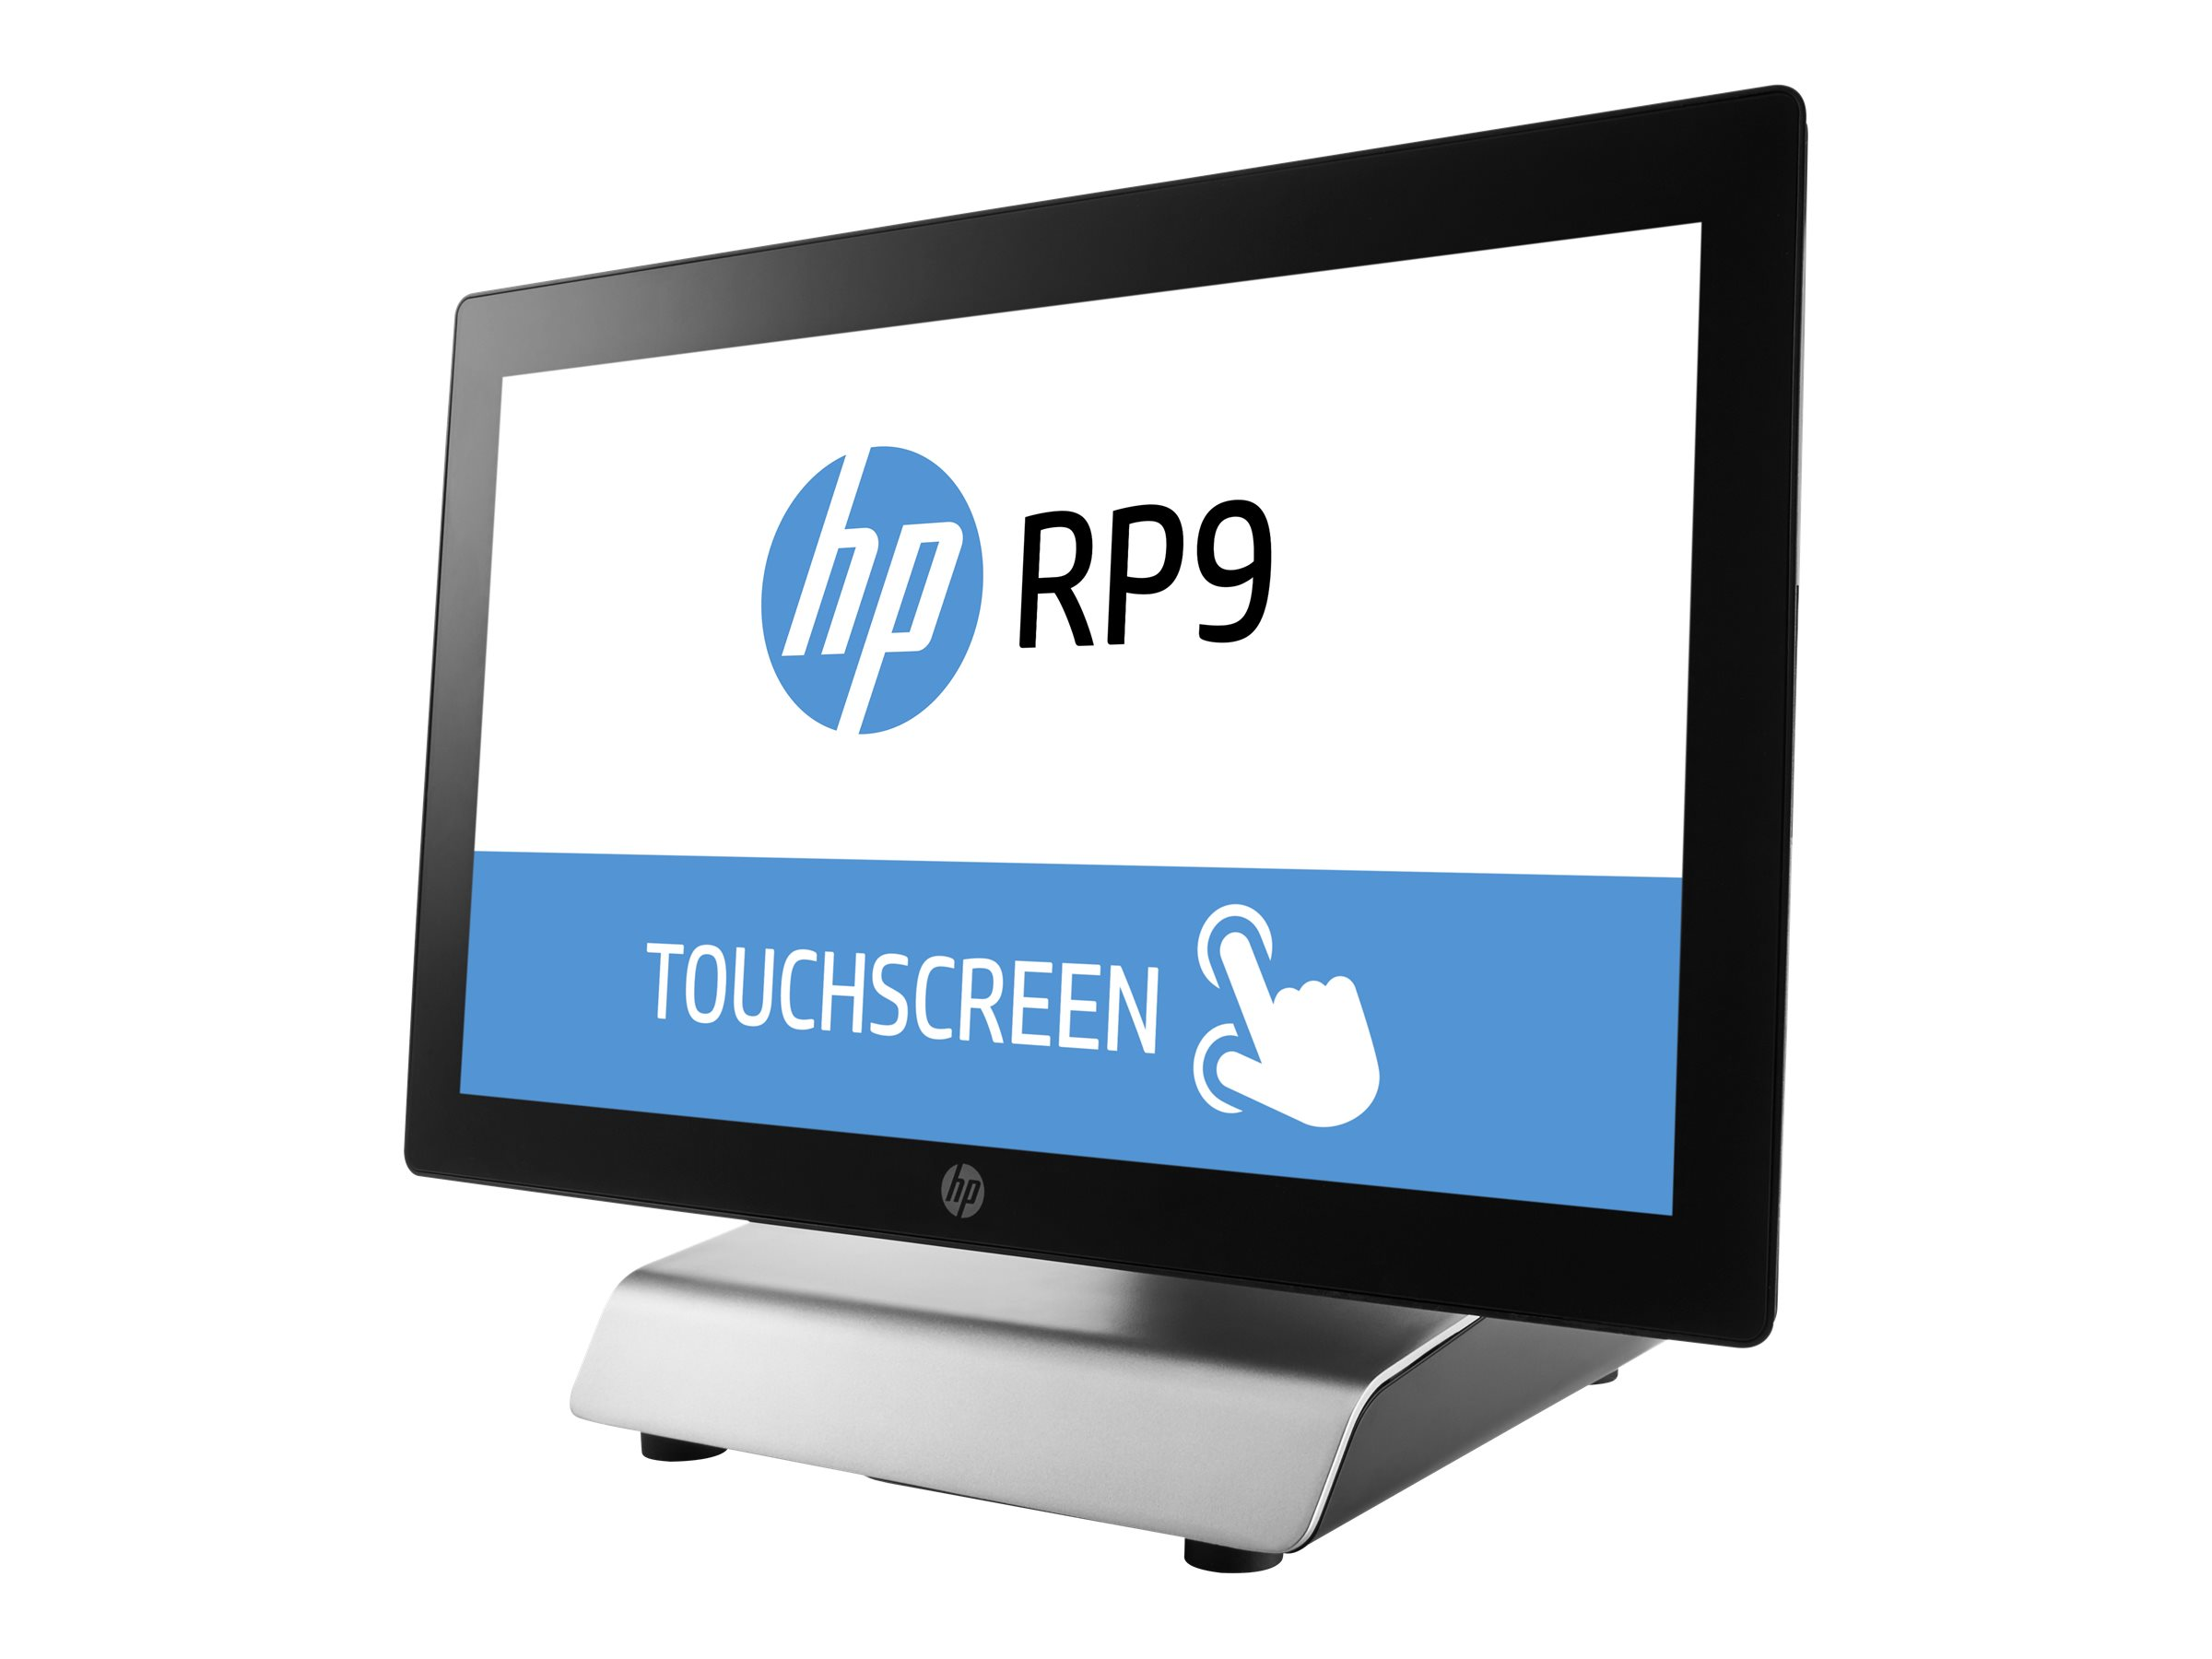 """HP RP9 G1 Retail System 9018 - all-in-one - Core i3 6100 3.7 GHz - 8 GB - 128 GB - LED 18.5"""""""